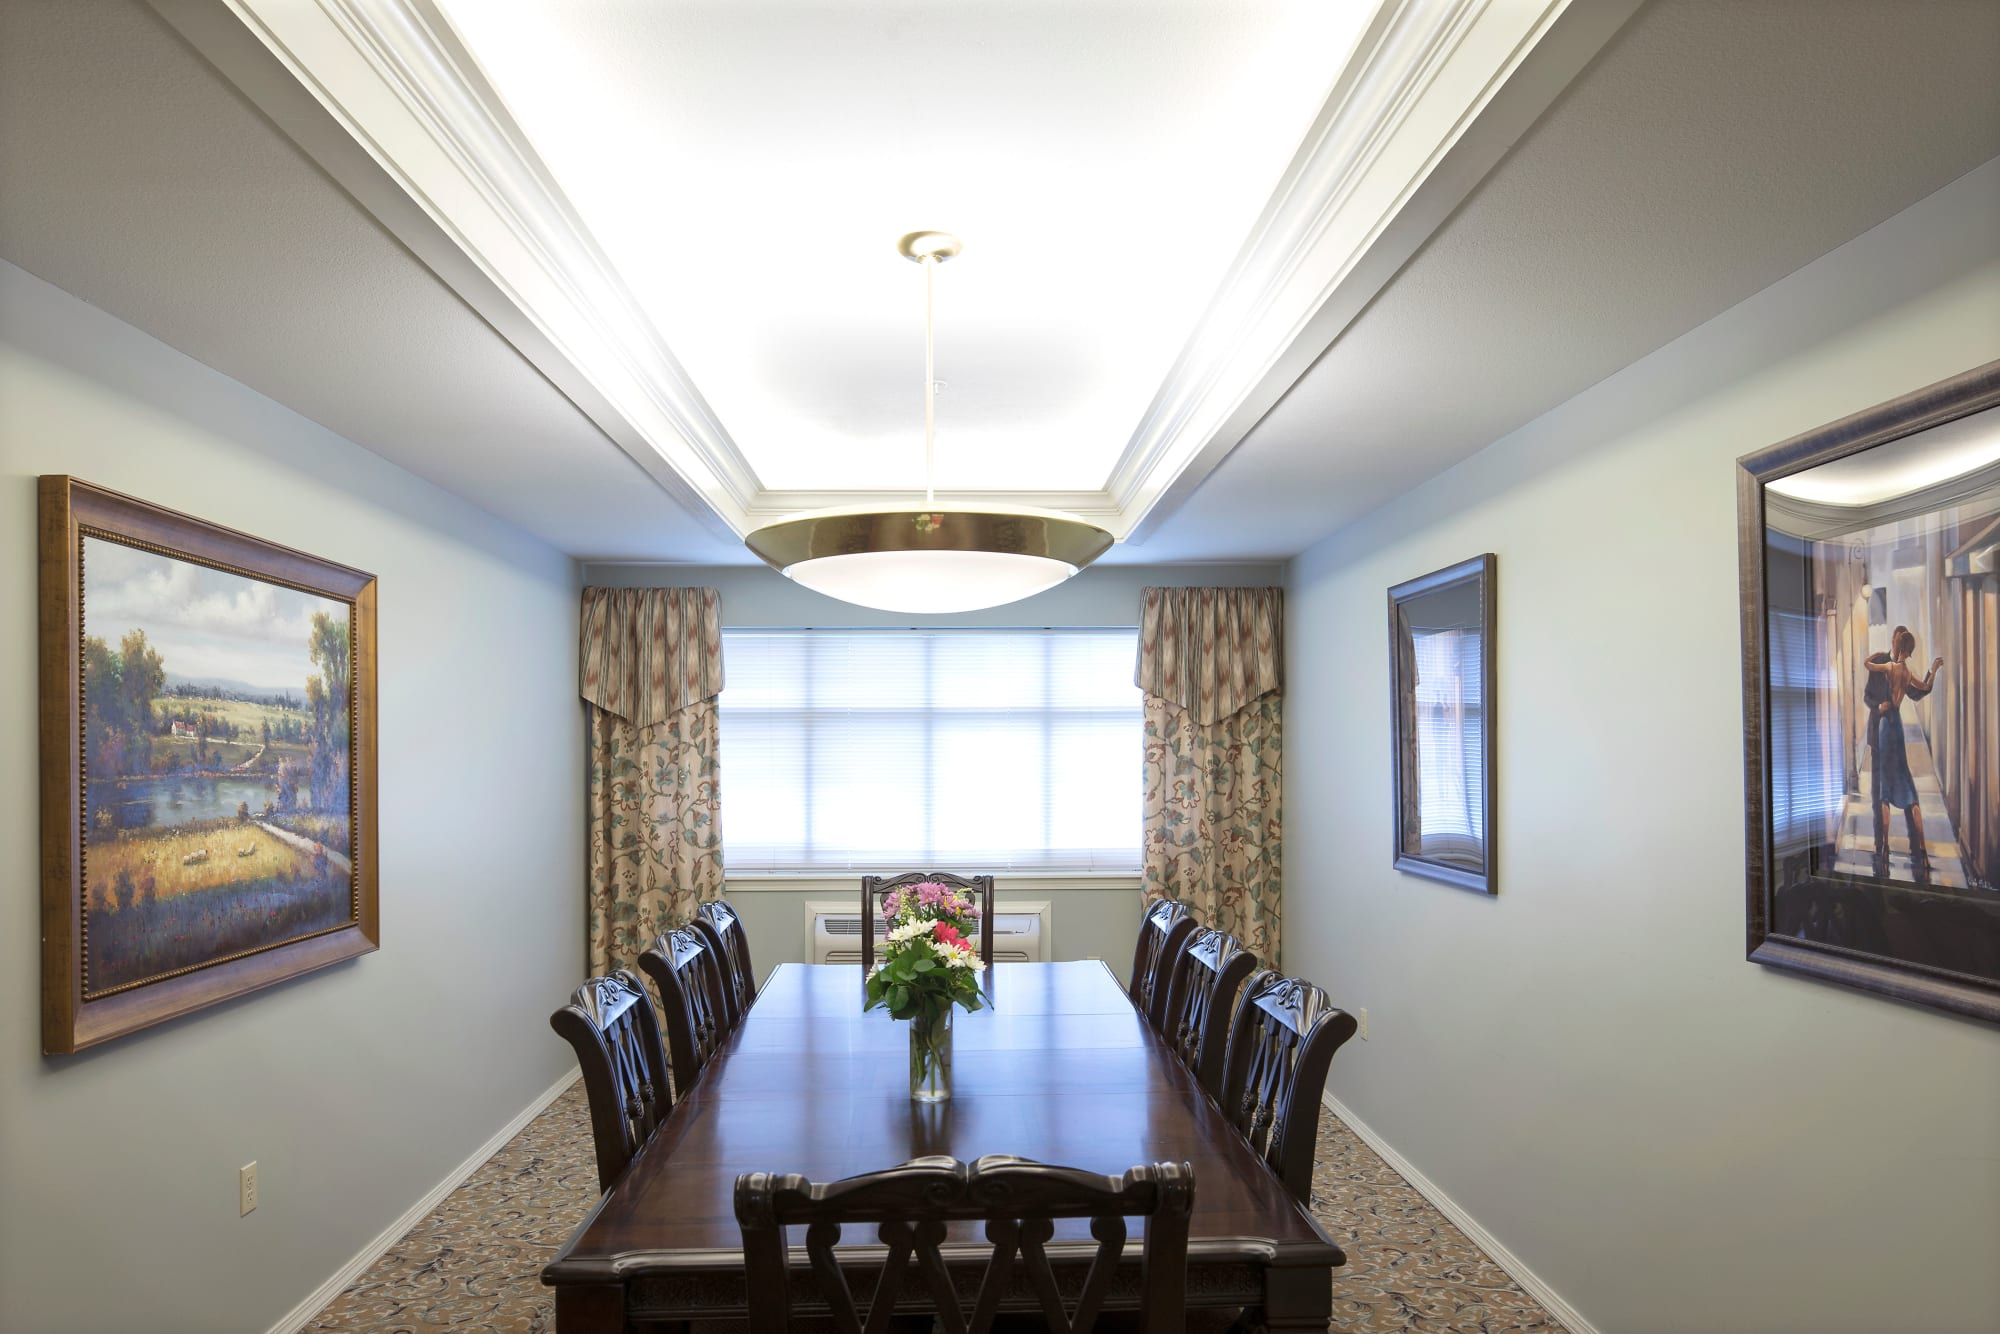 Private family dining room at Canoe Brook Assisted Living & Memory Care in Catoosa, Oklahoma